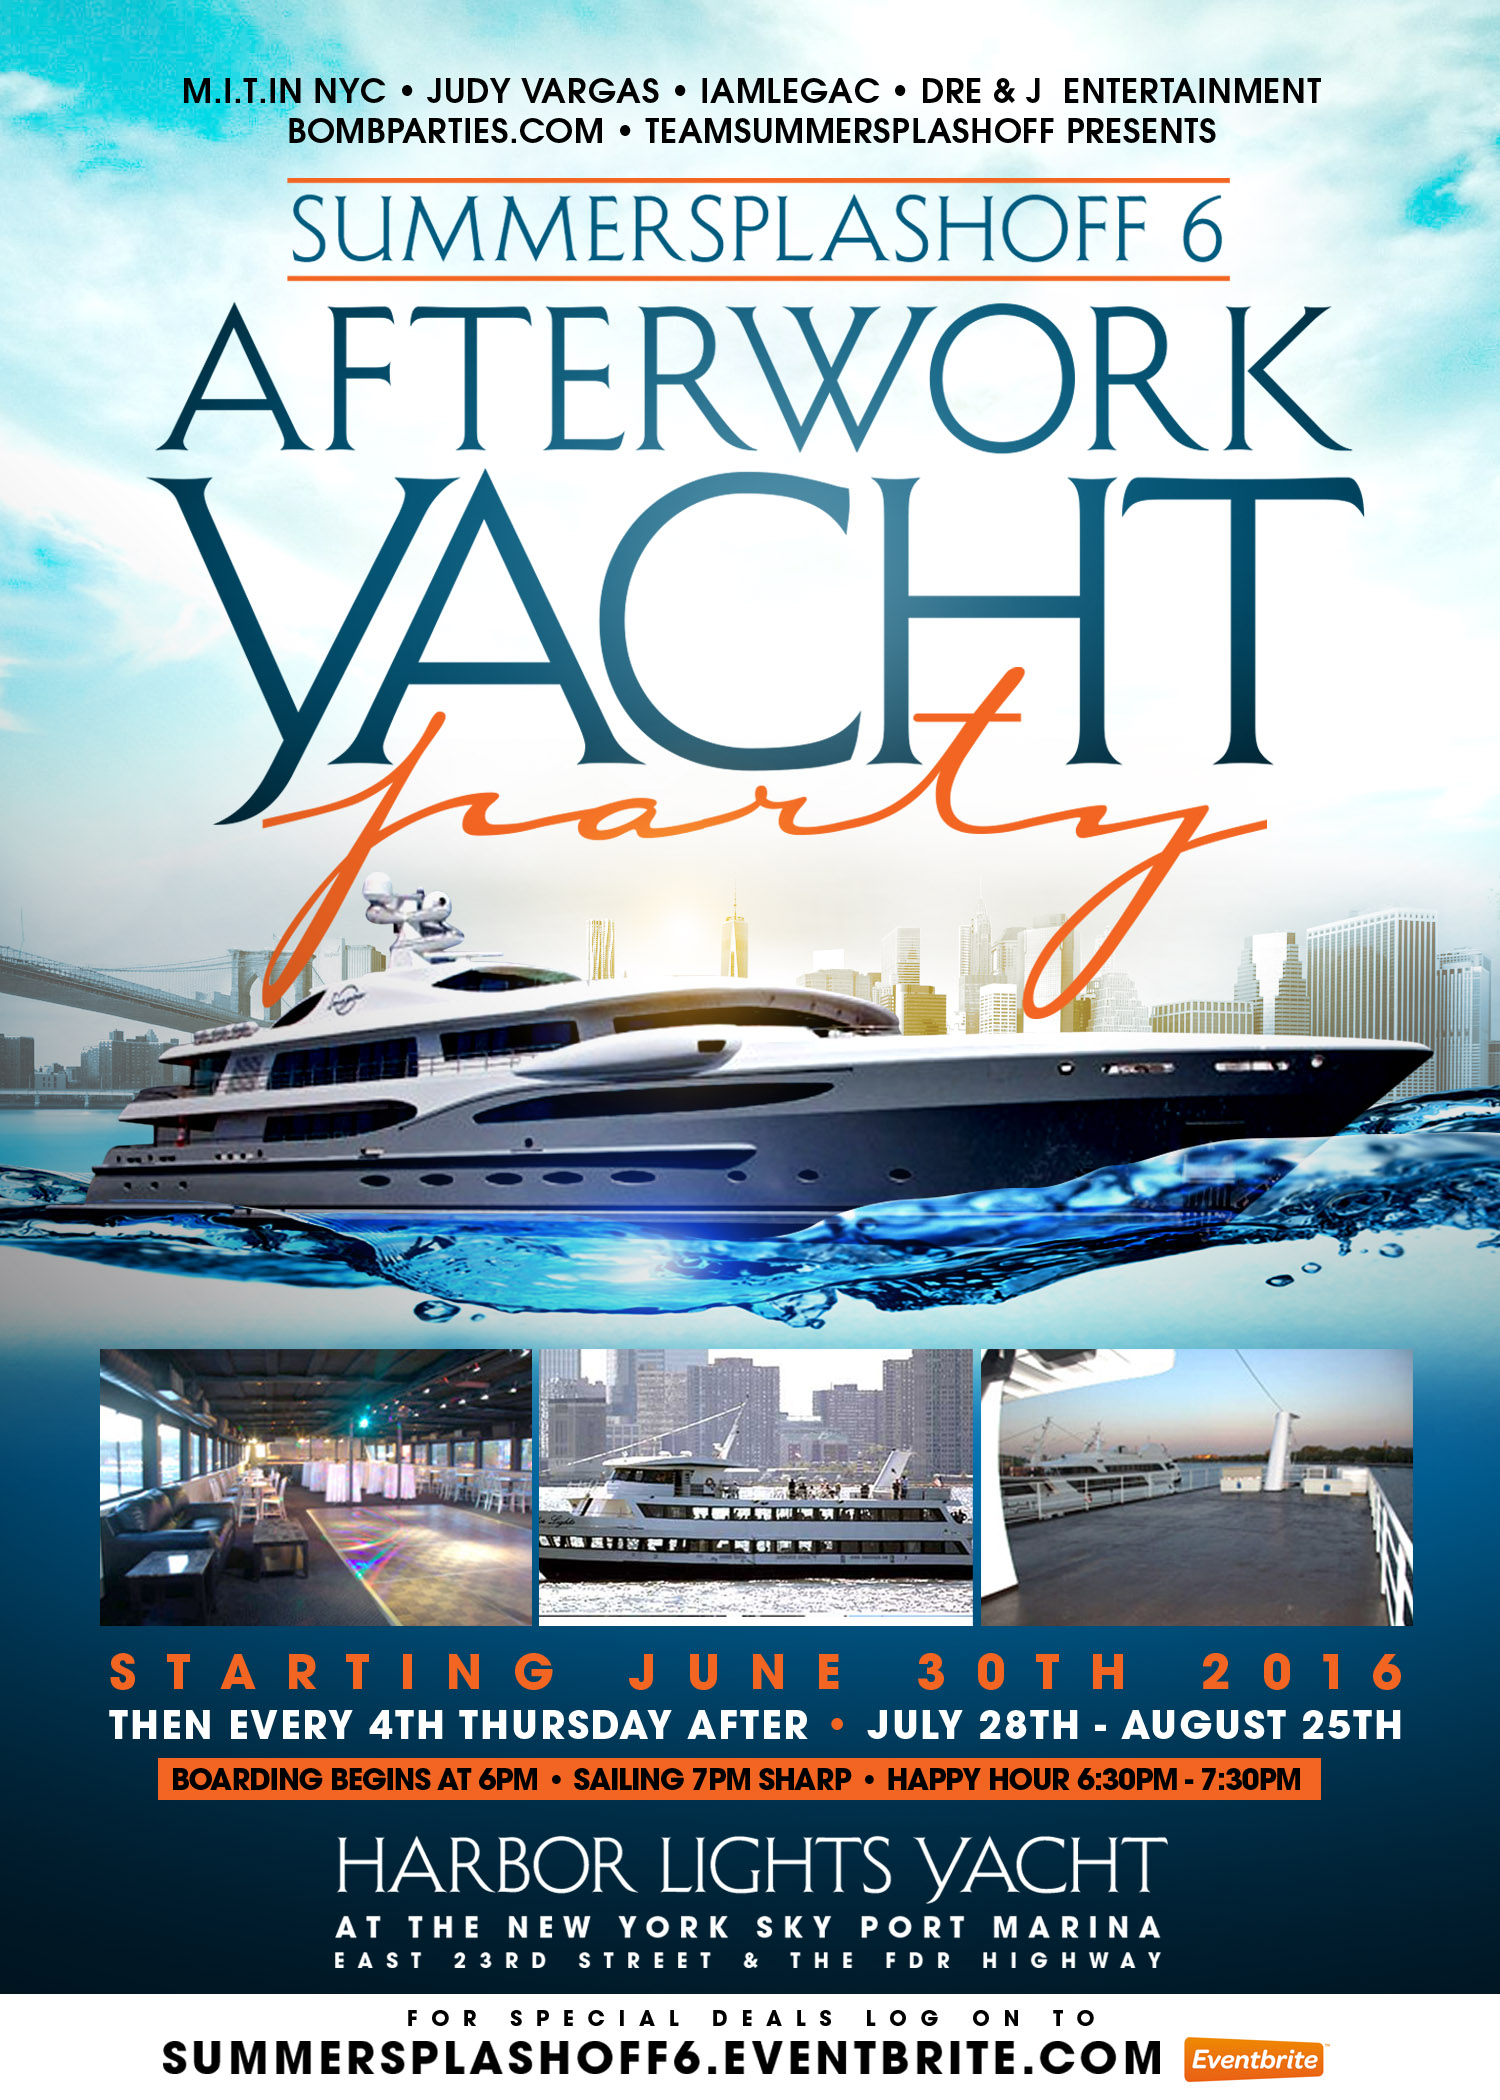 Summer Splashoff 6 After Work Yacht Party The Harbor